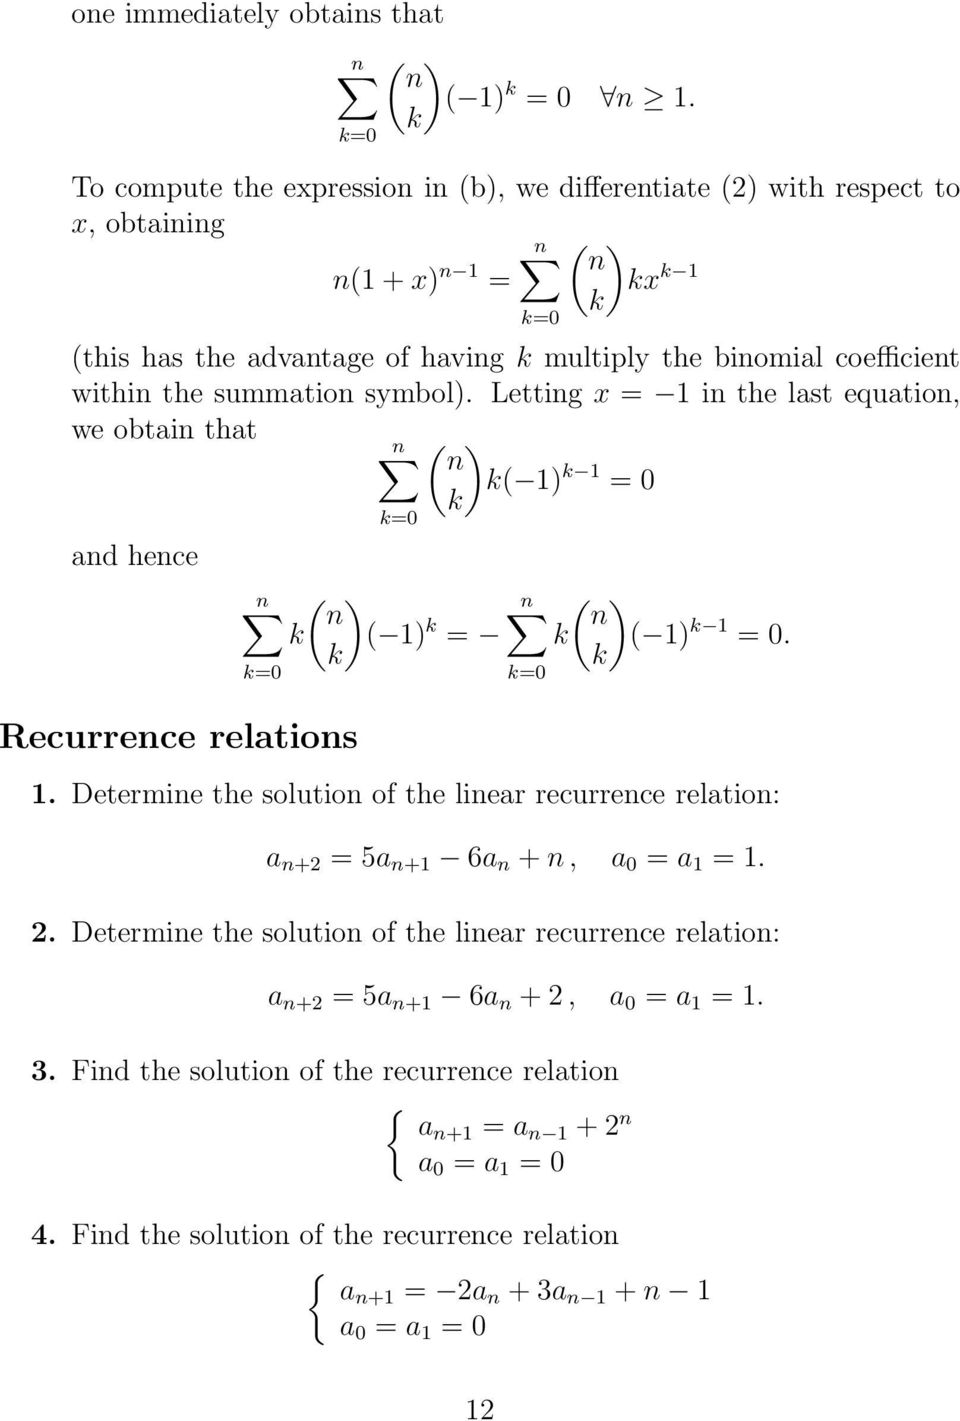 summation symbol). Letting x = 1 in the last equation, we obtain that n ( ) n ( 1) 1 = 0 and hence Recurrence relations n ( ) n n ( ) n ( 1) = ( 1) 1 = 0. 1. Determine the solution of the linear recurrence relation: a n+2 = 5a n+1 6a n + n, a 0 = a 1 = 1.